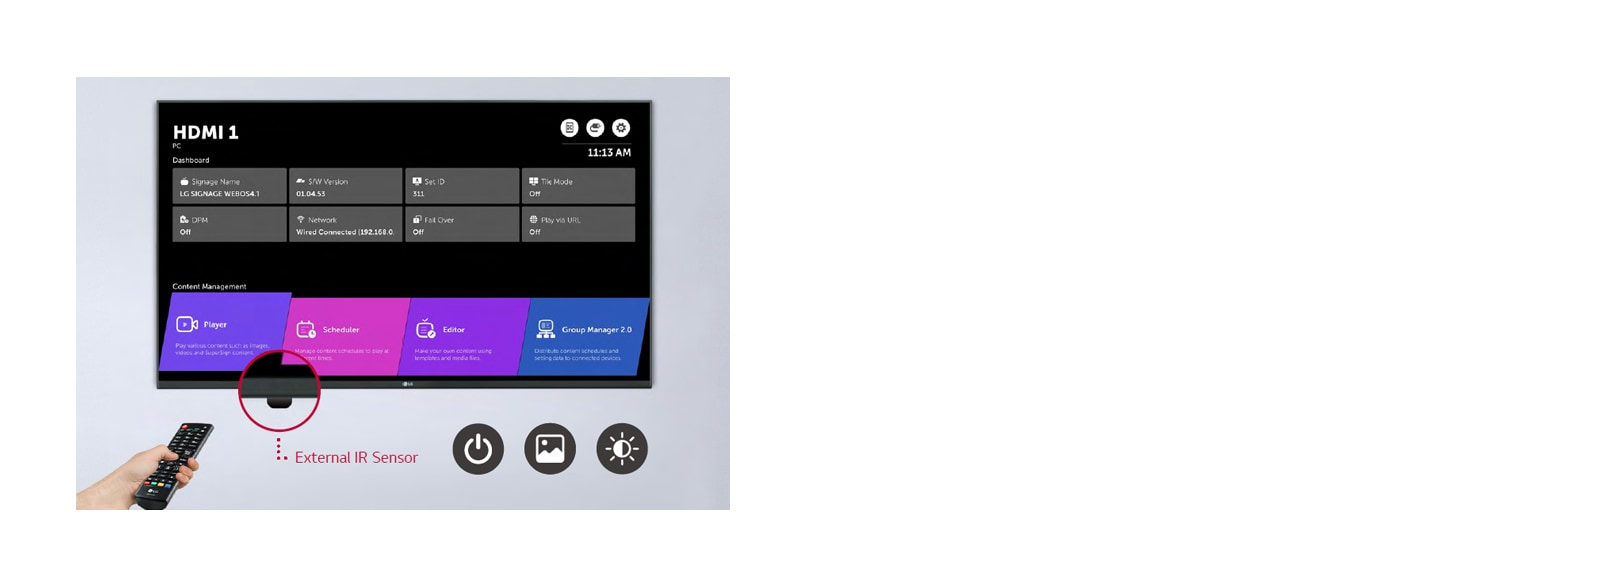 Easy Remote Control Support